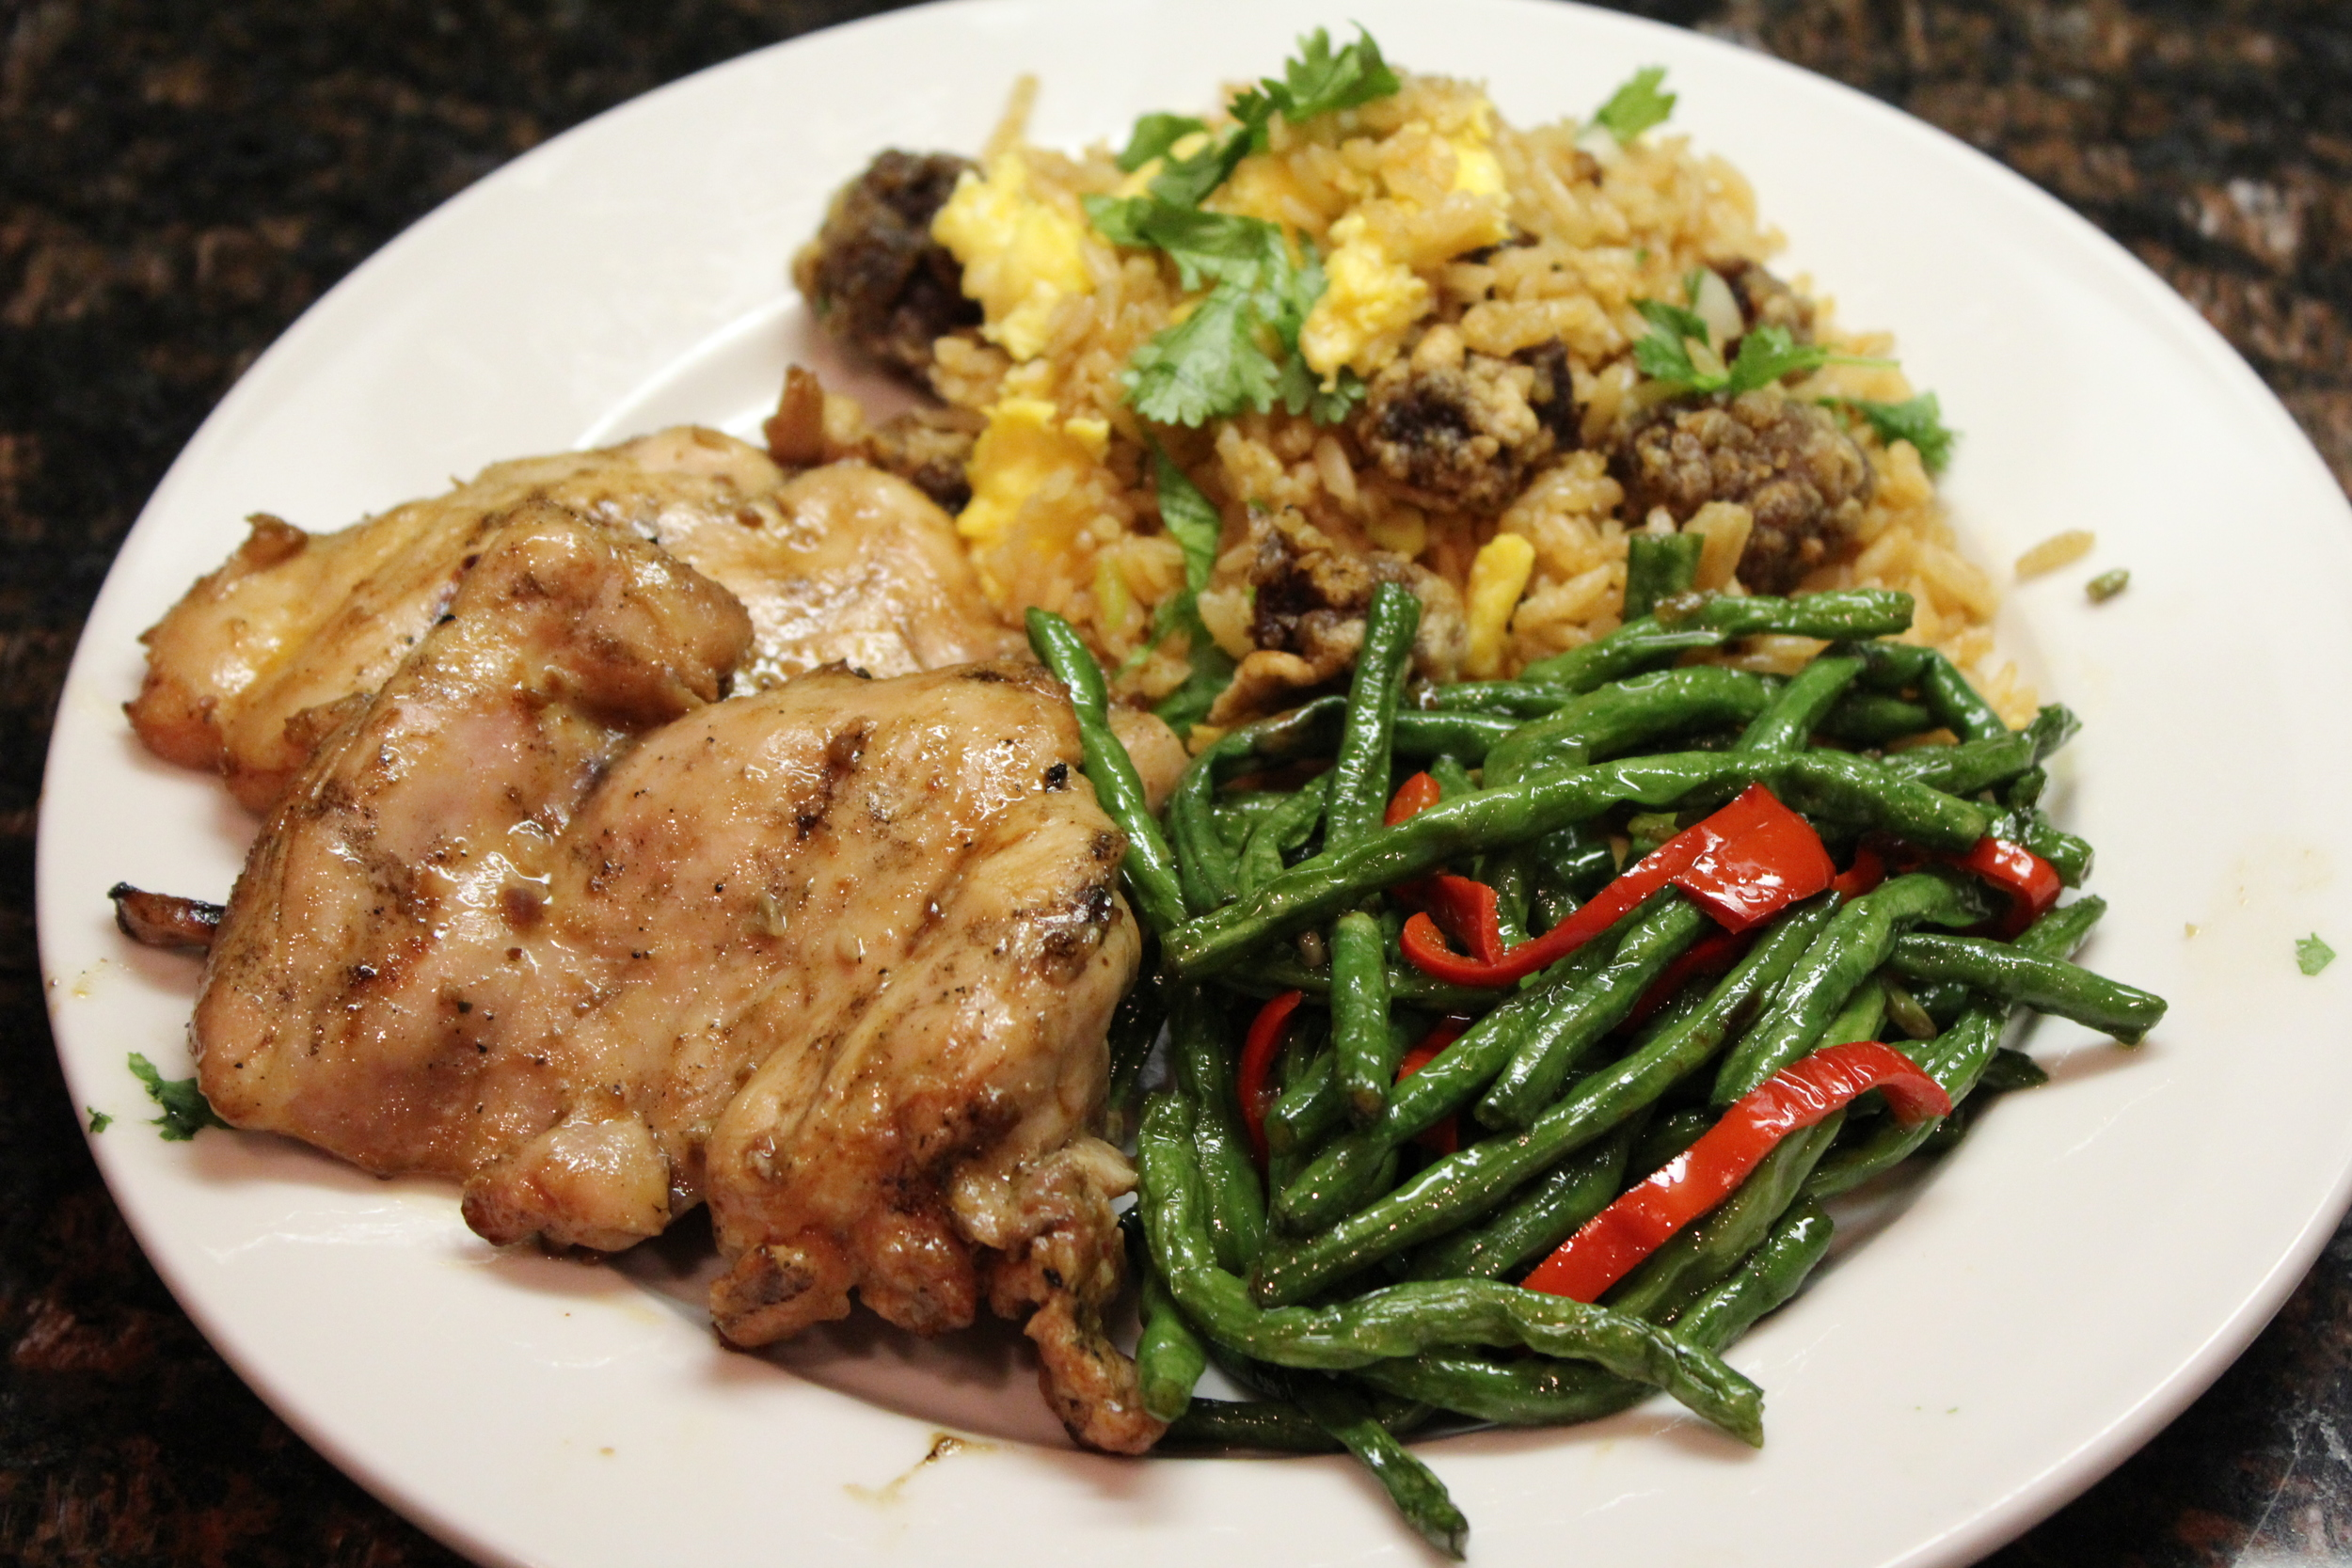 Teriyaki chicken with Chinese long beans and pork belly fried rice.